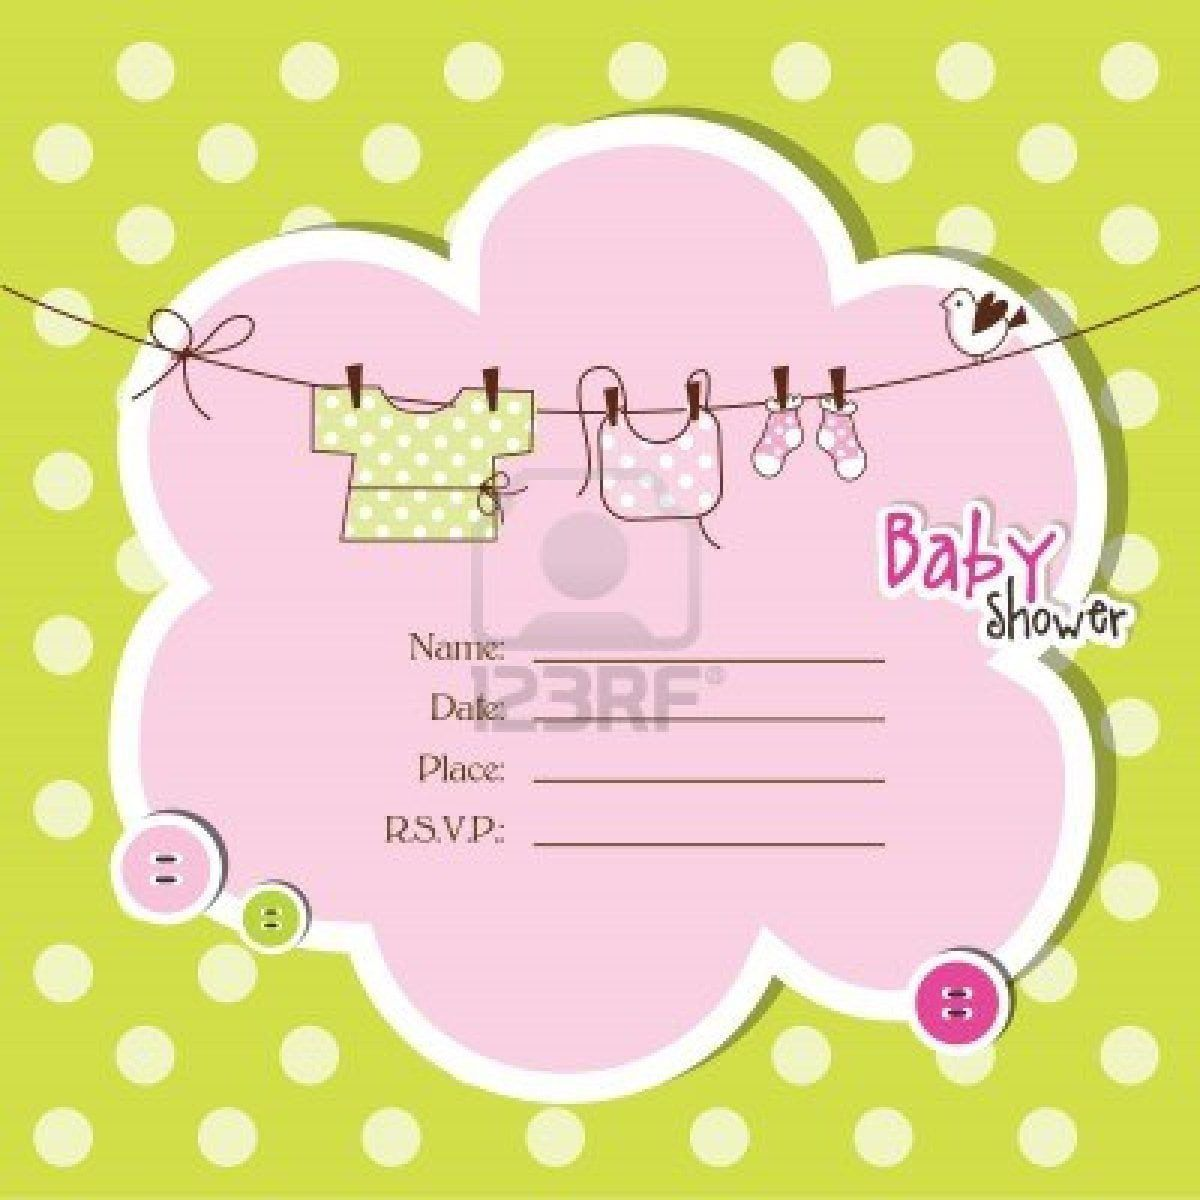 008 Magnificent Baby Shower Invitation Template Microsoft Word Highest Clarity  Free EditableFull